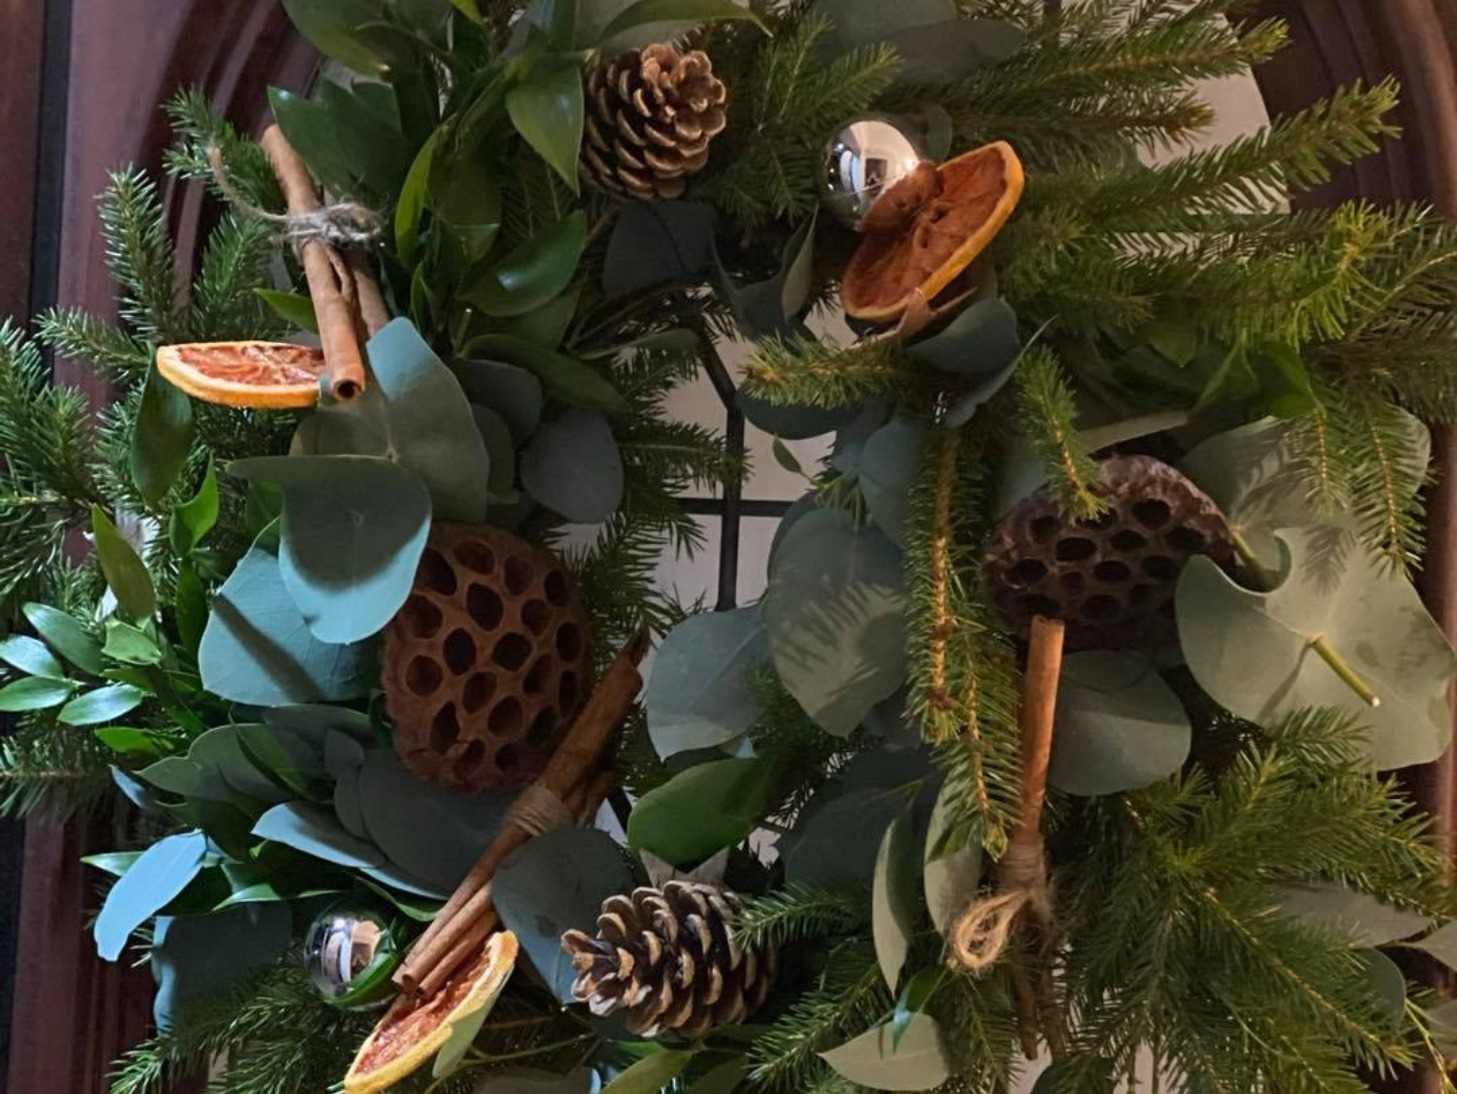 Festive Afternoon Tea and Wreath Making (Wednesday 8th December Workshop Room 2: 10am-1pm) DEPOSIT